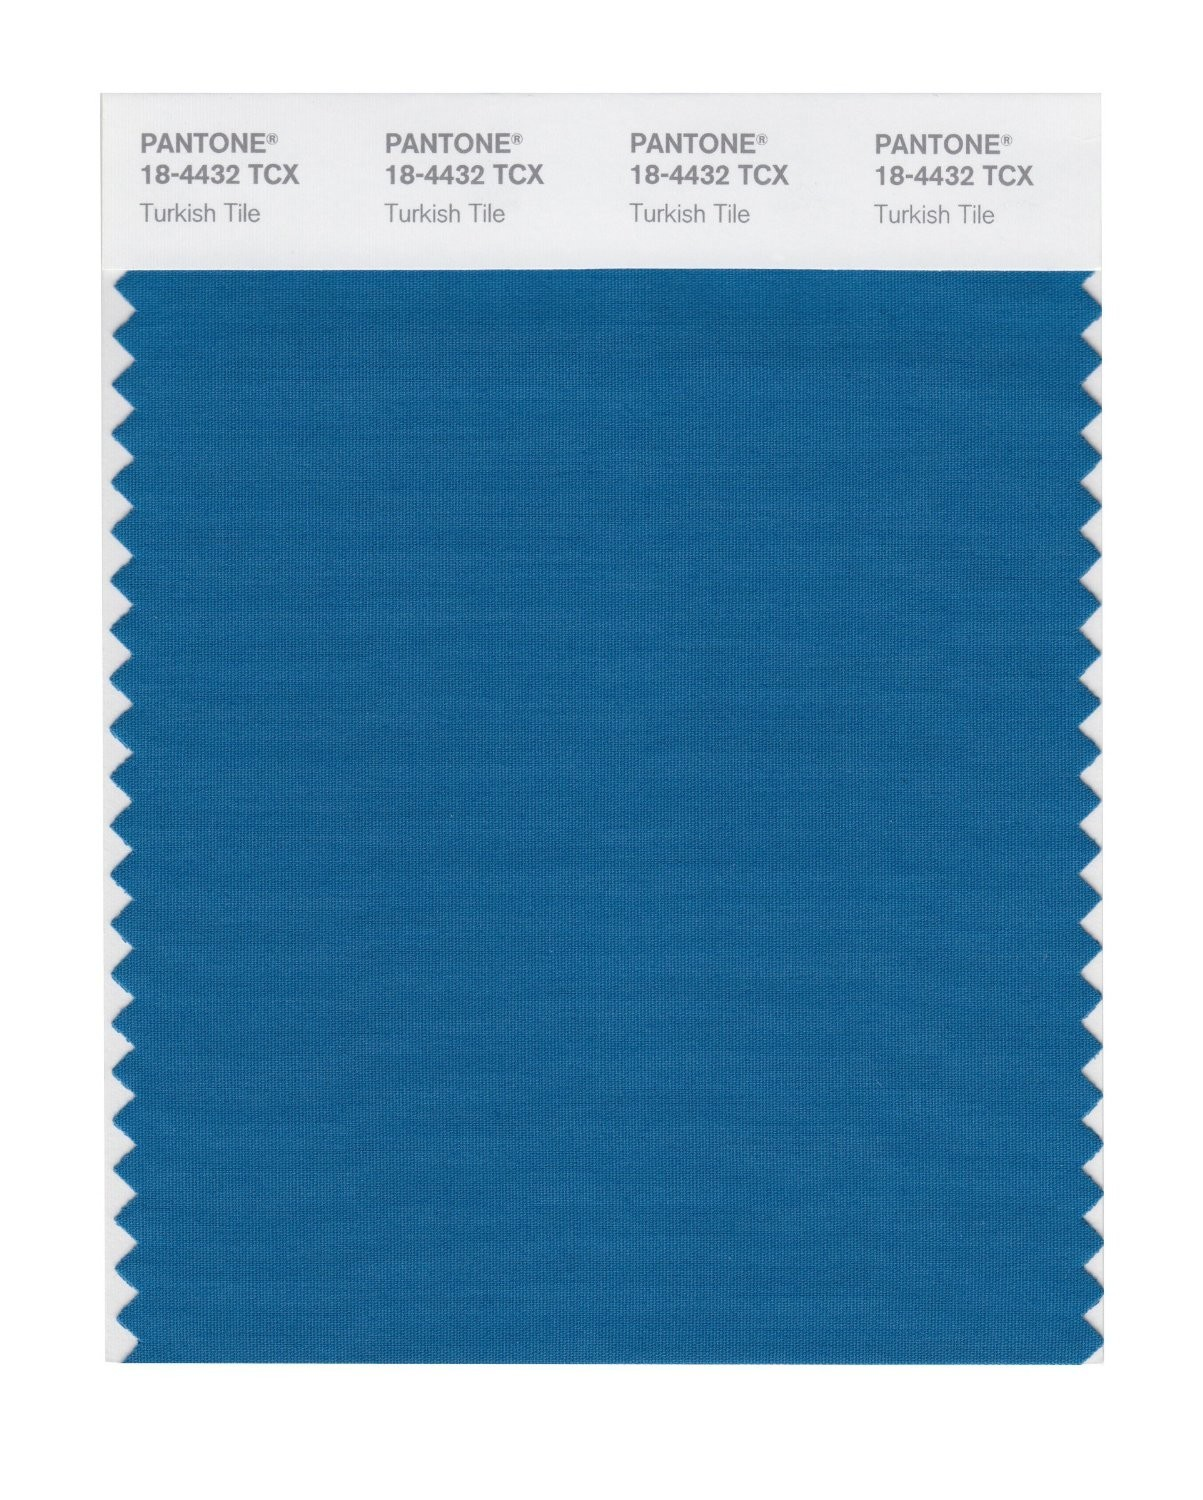 Pantone 18-4432 TCX Swatch Card Turkish Tile